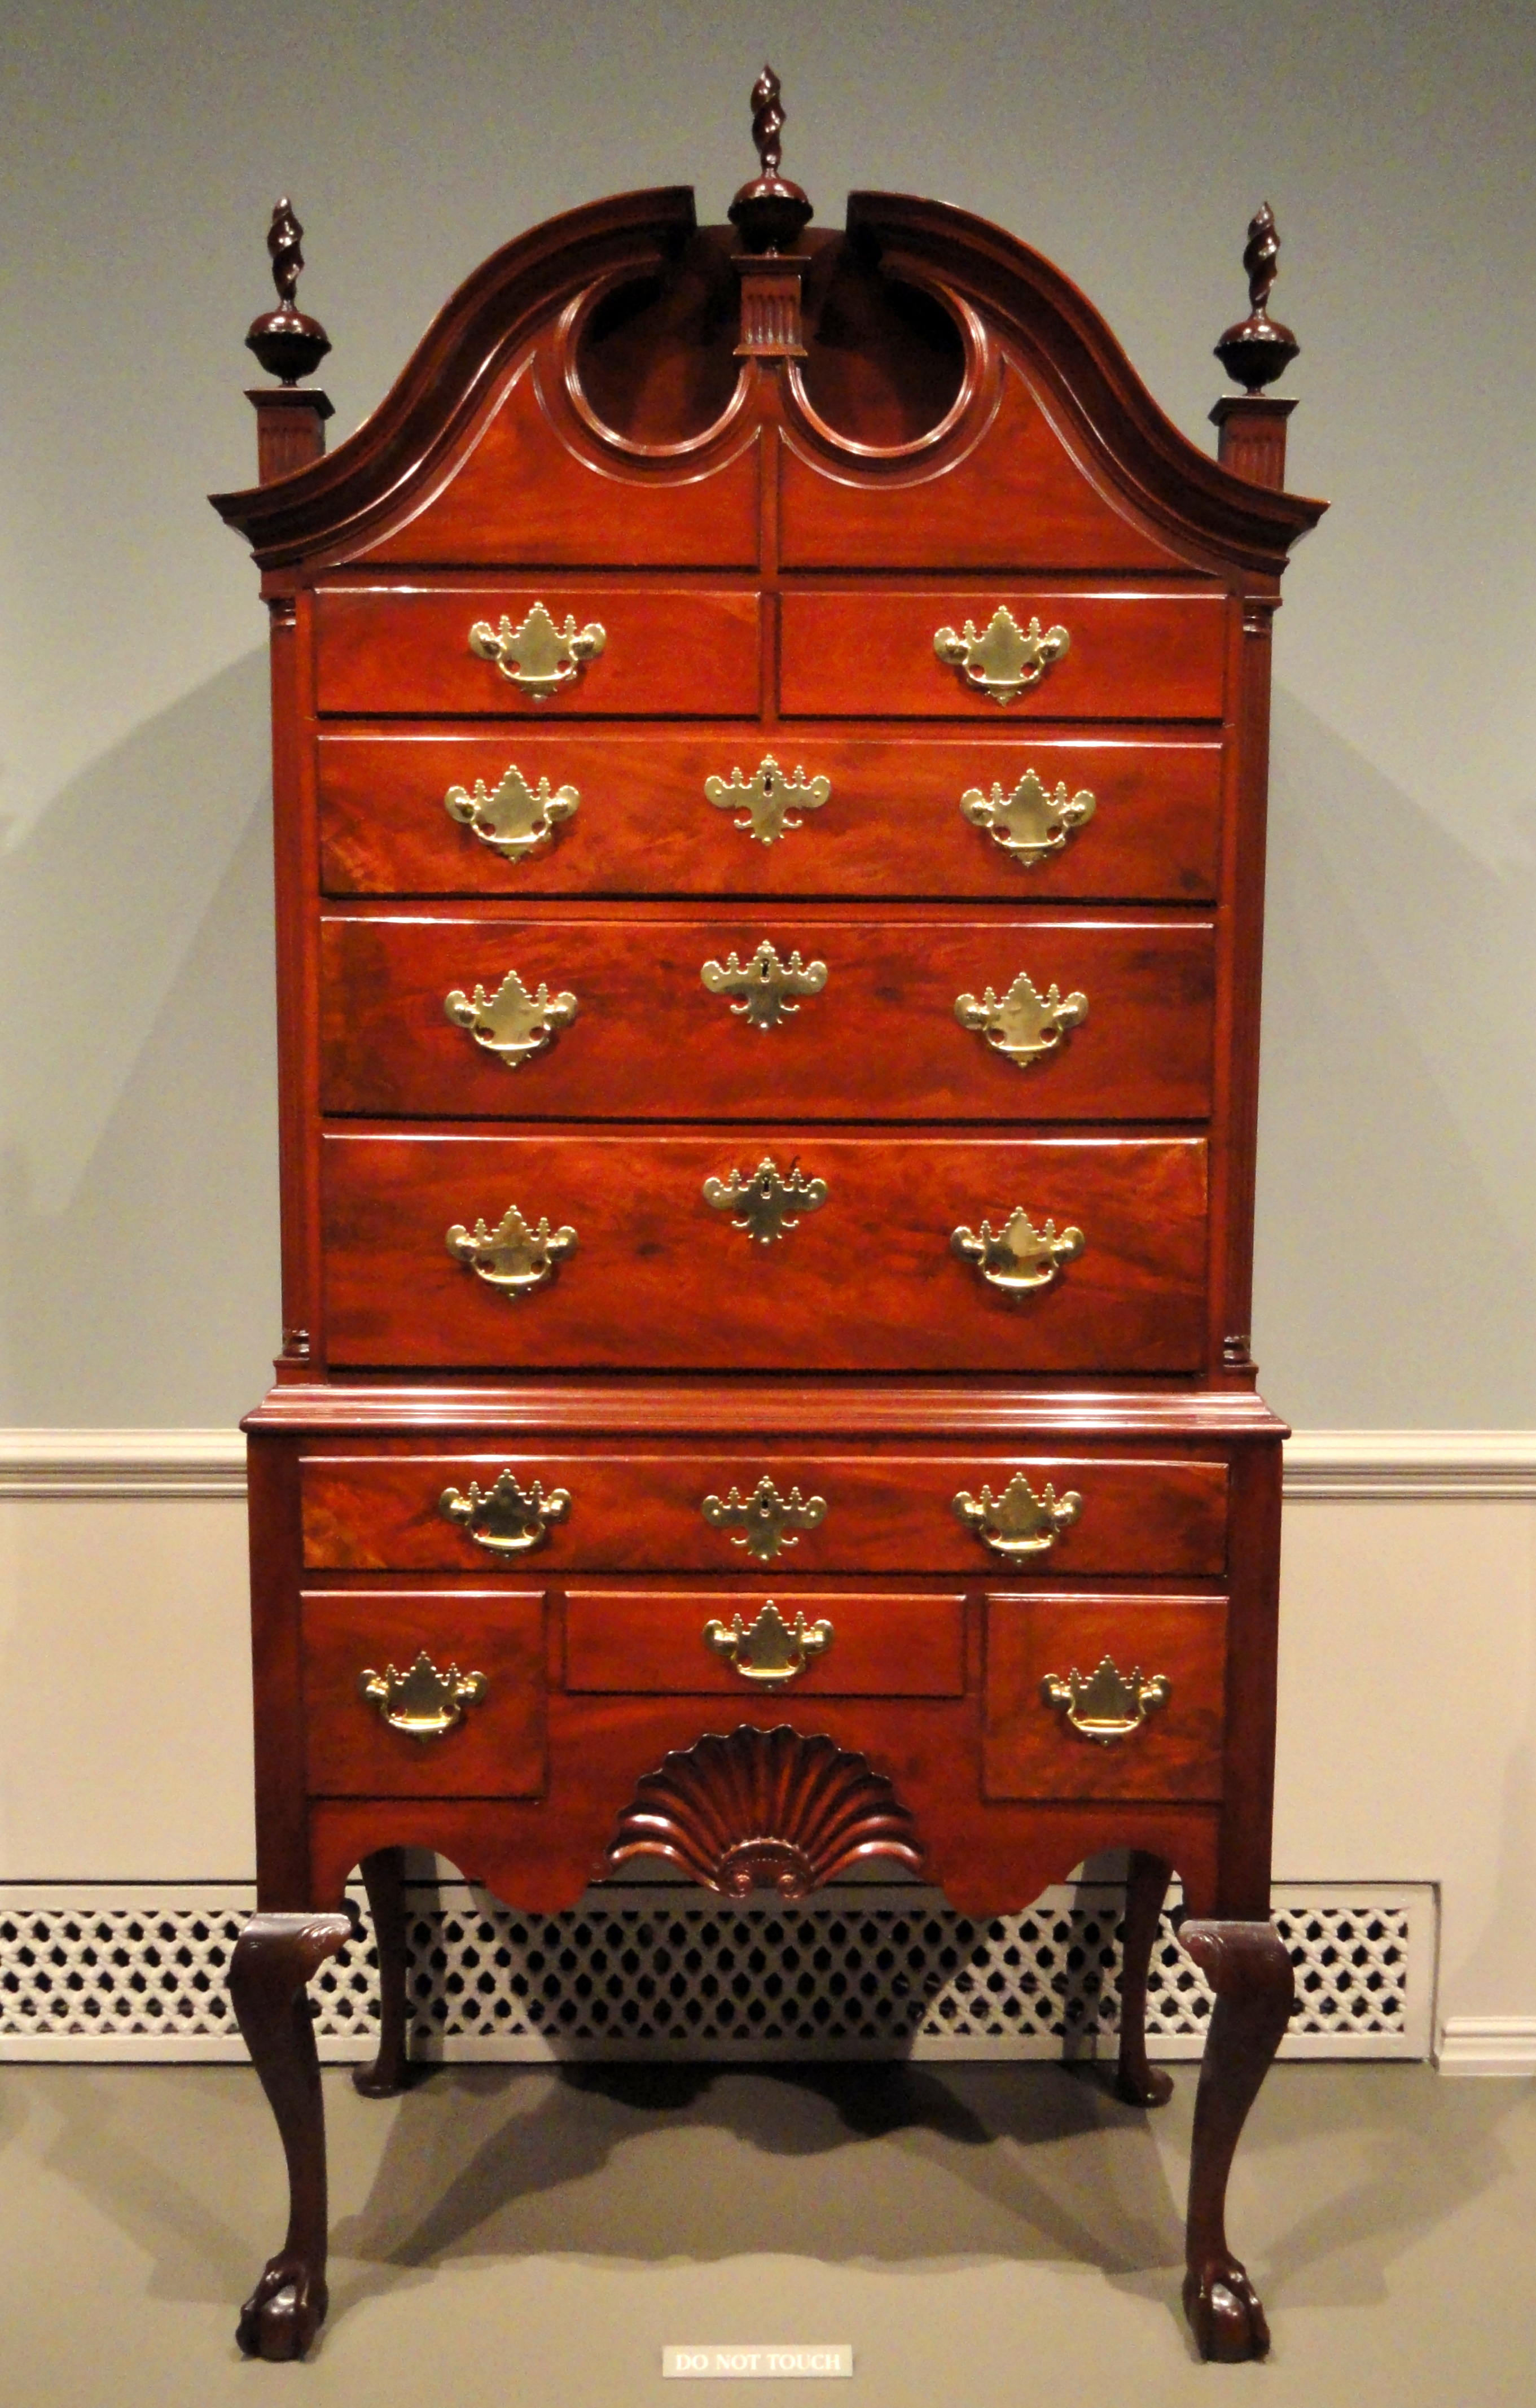 File:High Chest, Attributed To John Townsend, Newport, 1765 1770,